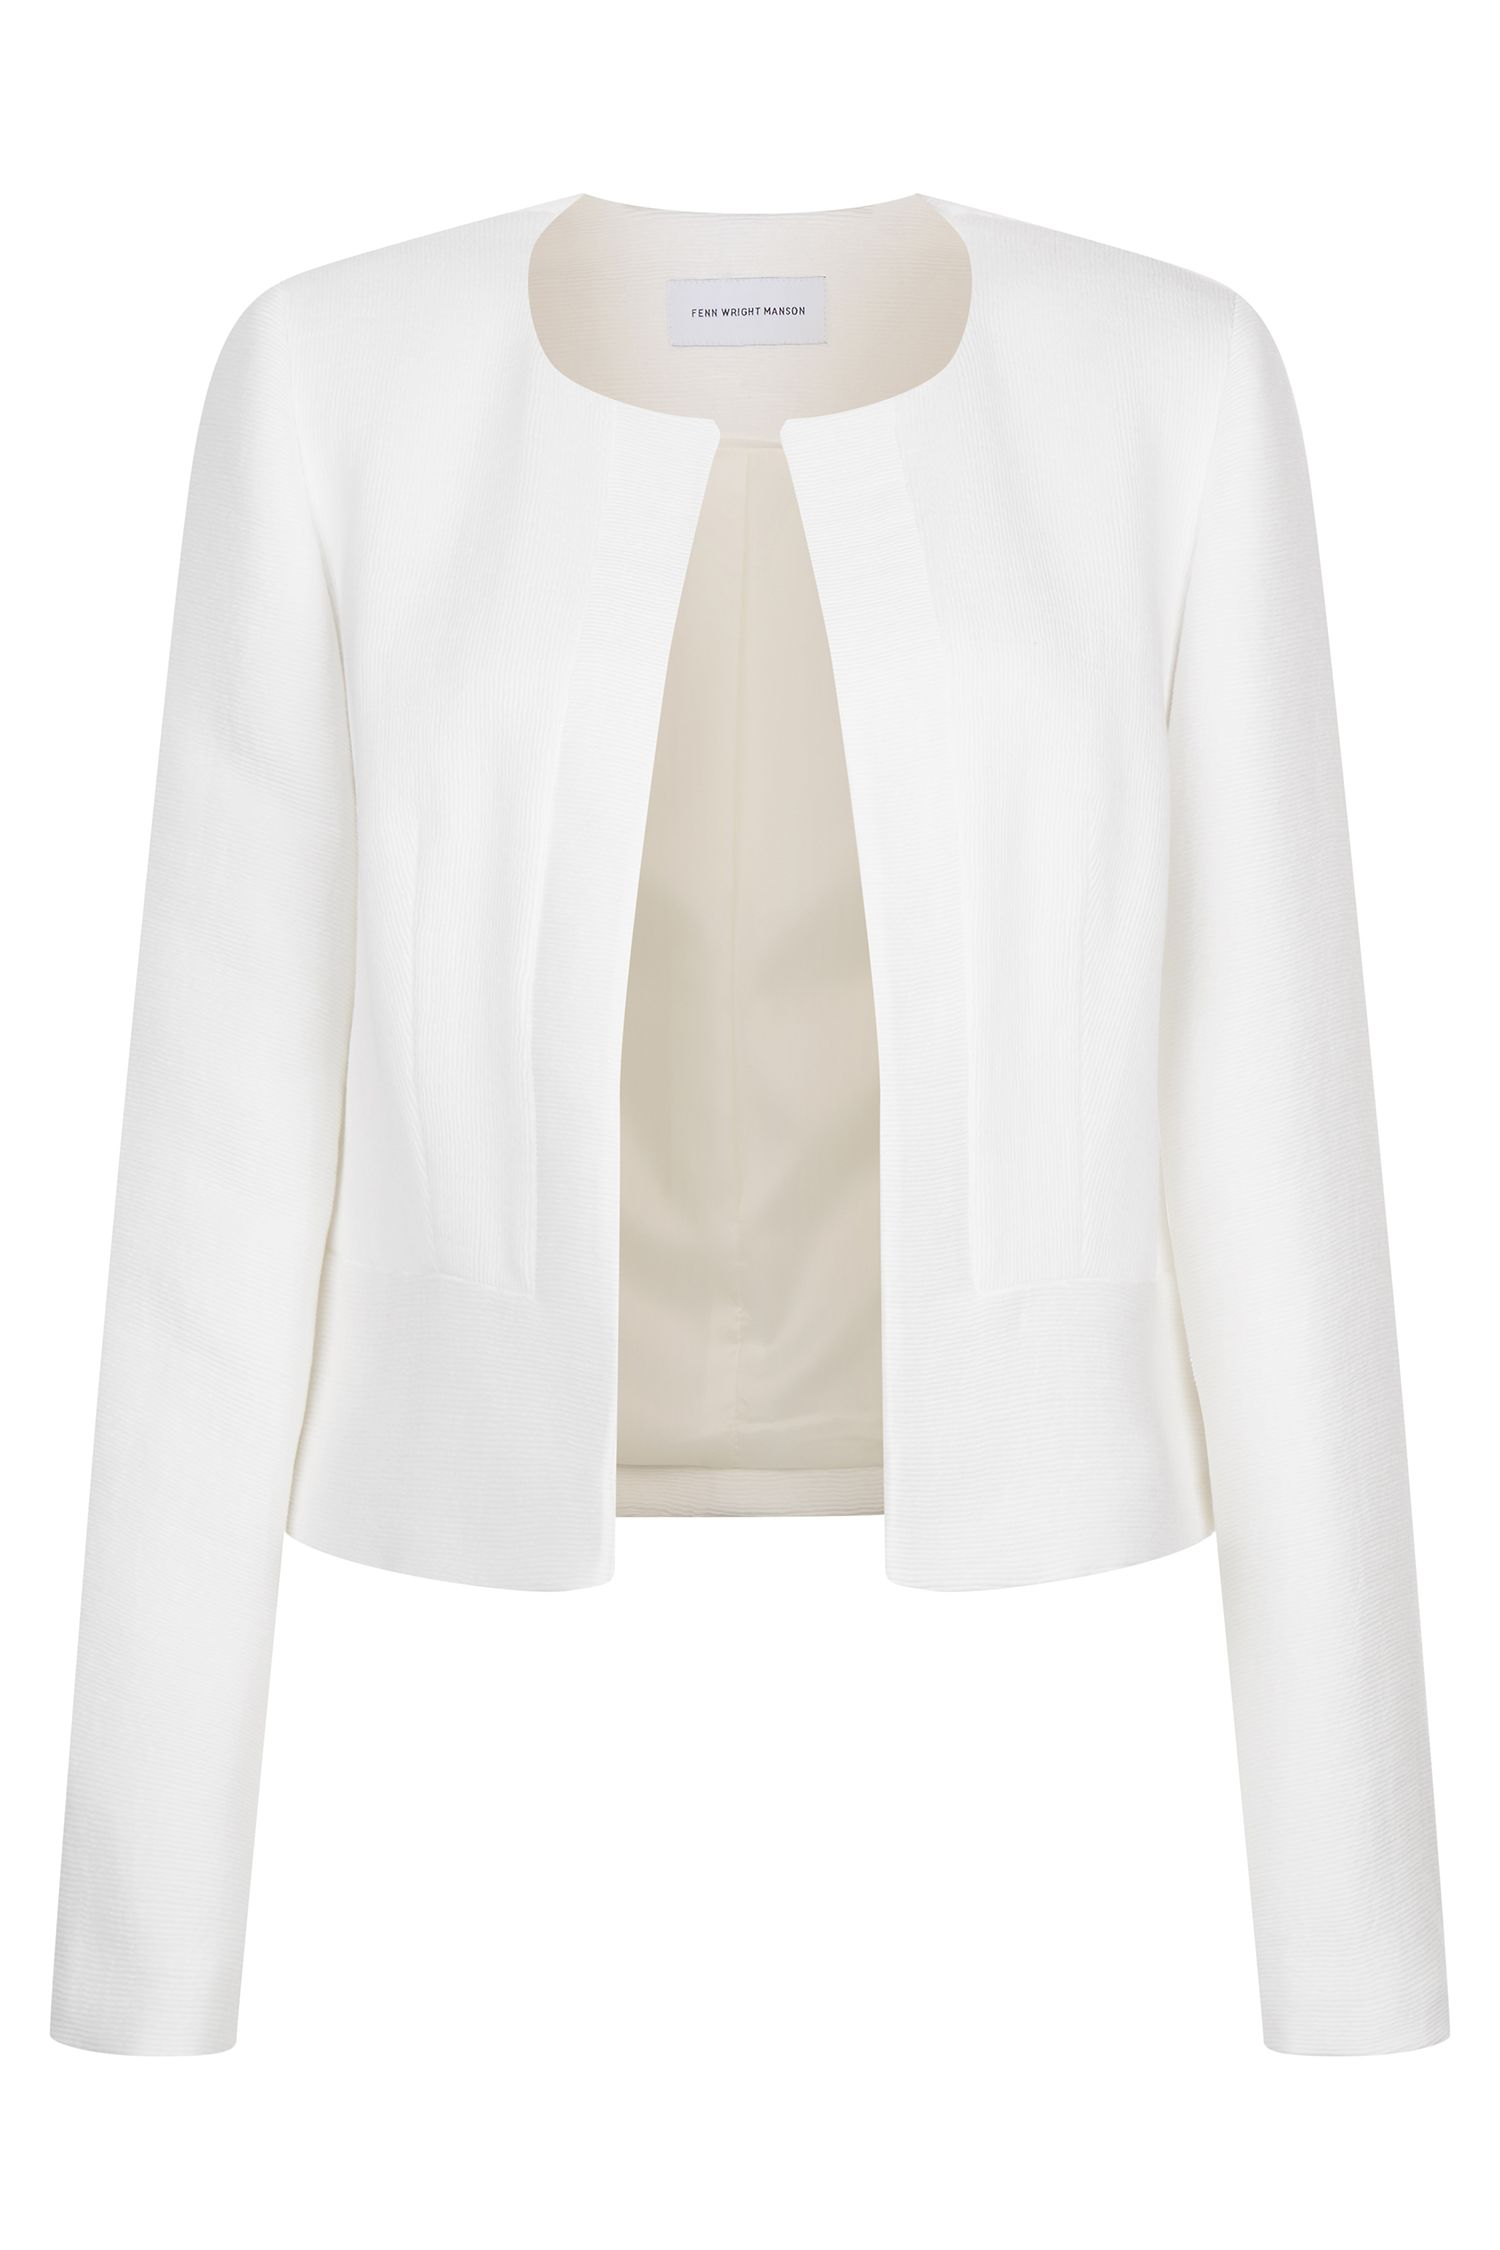 Fenn Wright Manson Valencia Jacket, White